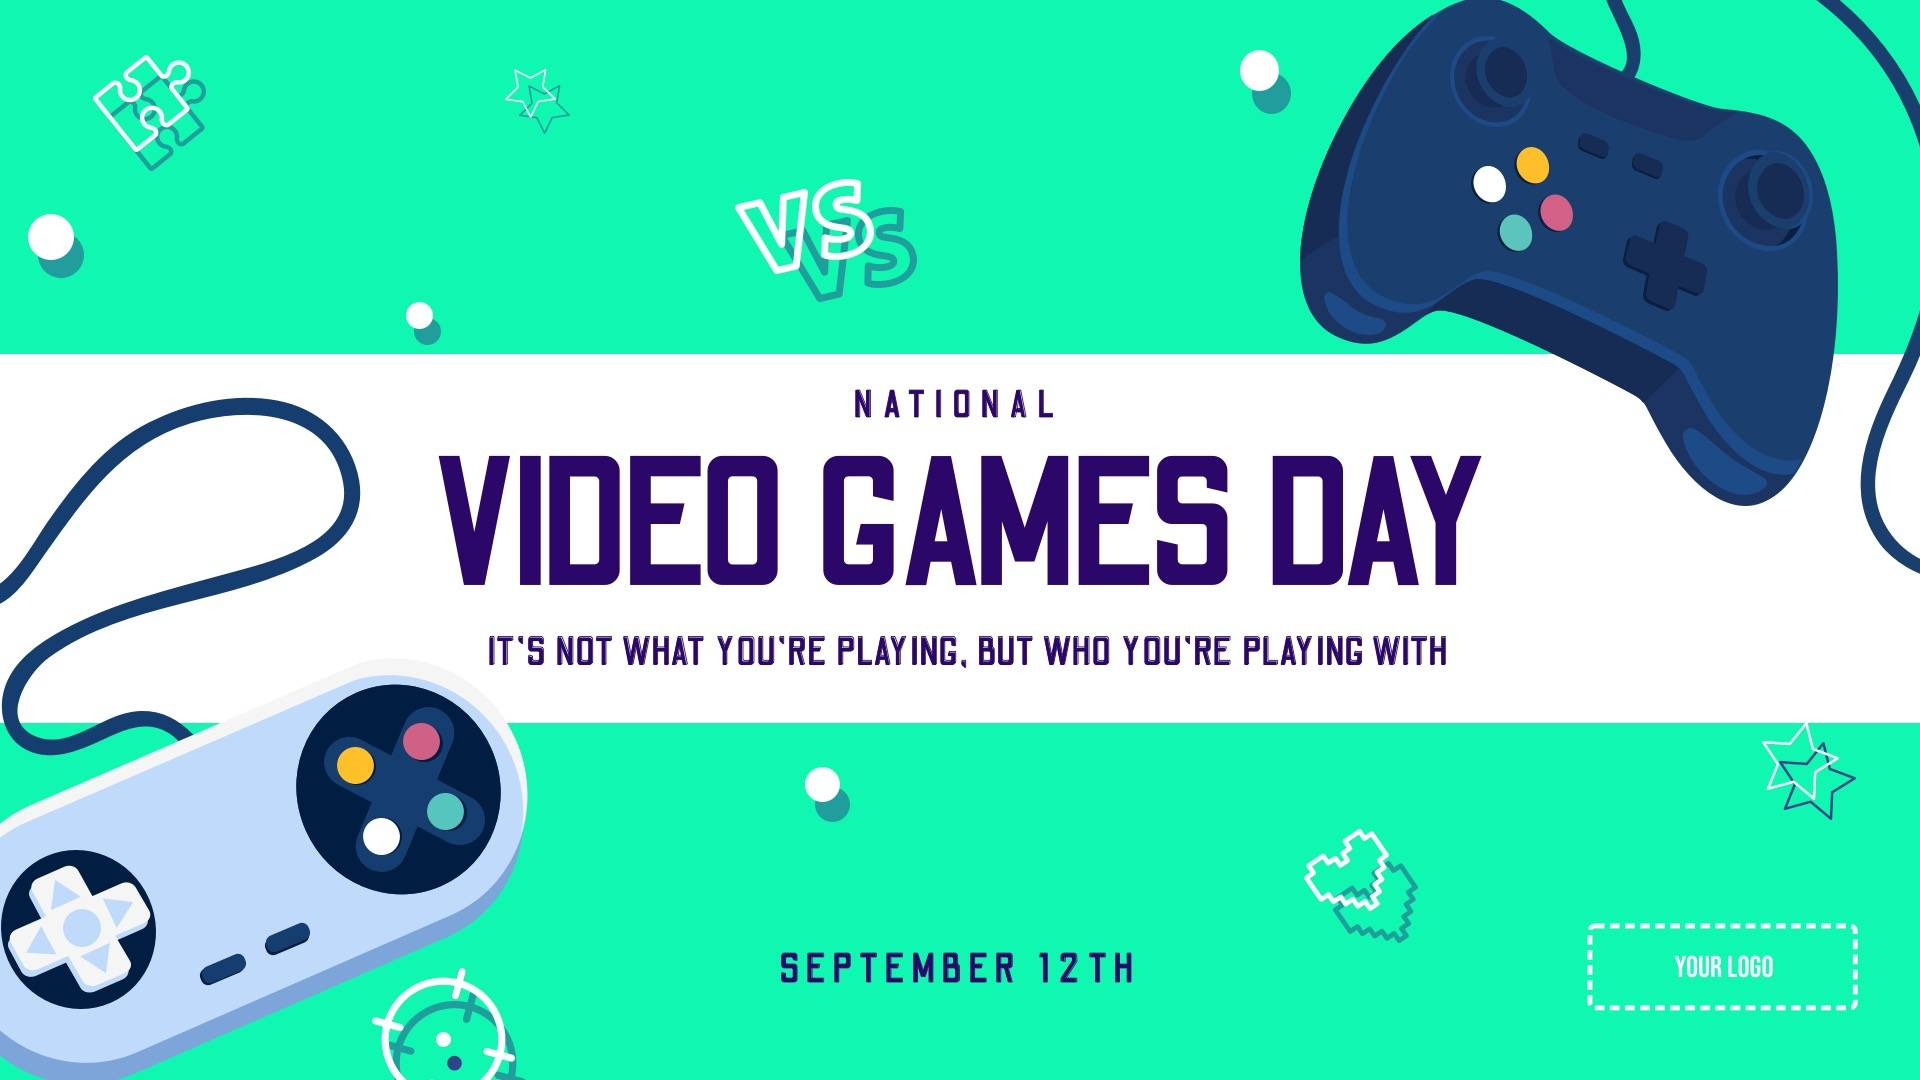 National Video Games Day Digital Signage Template